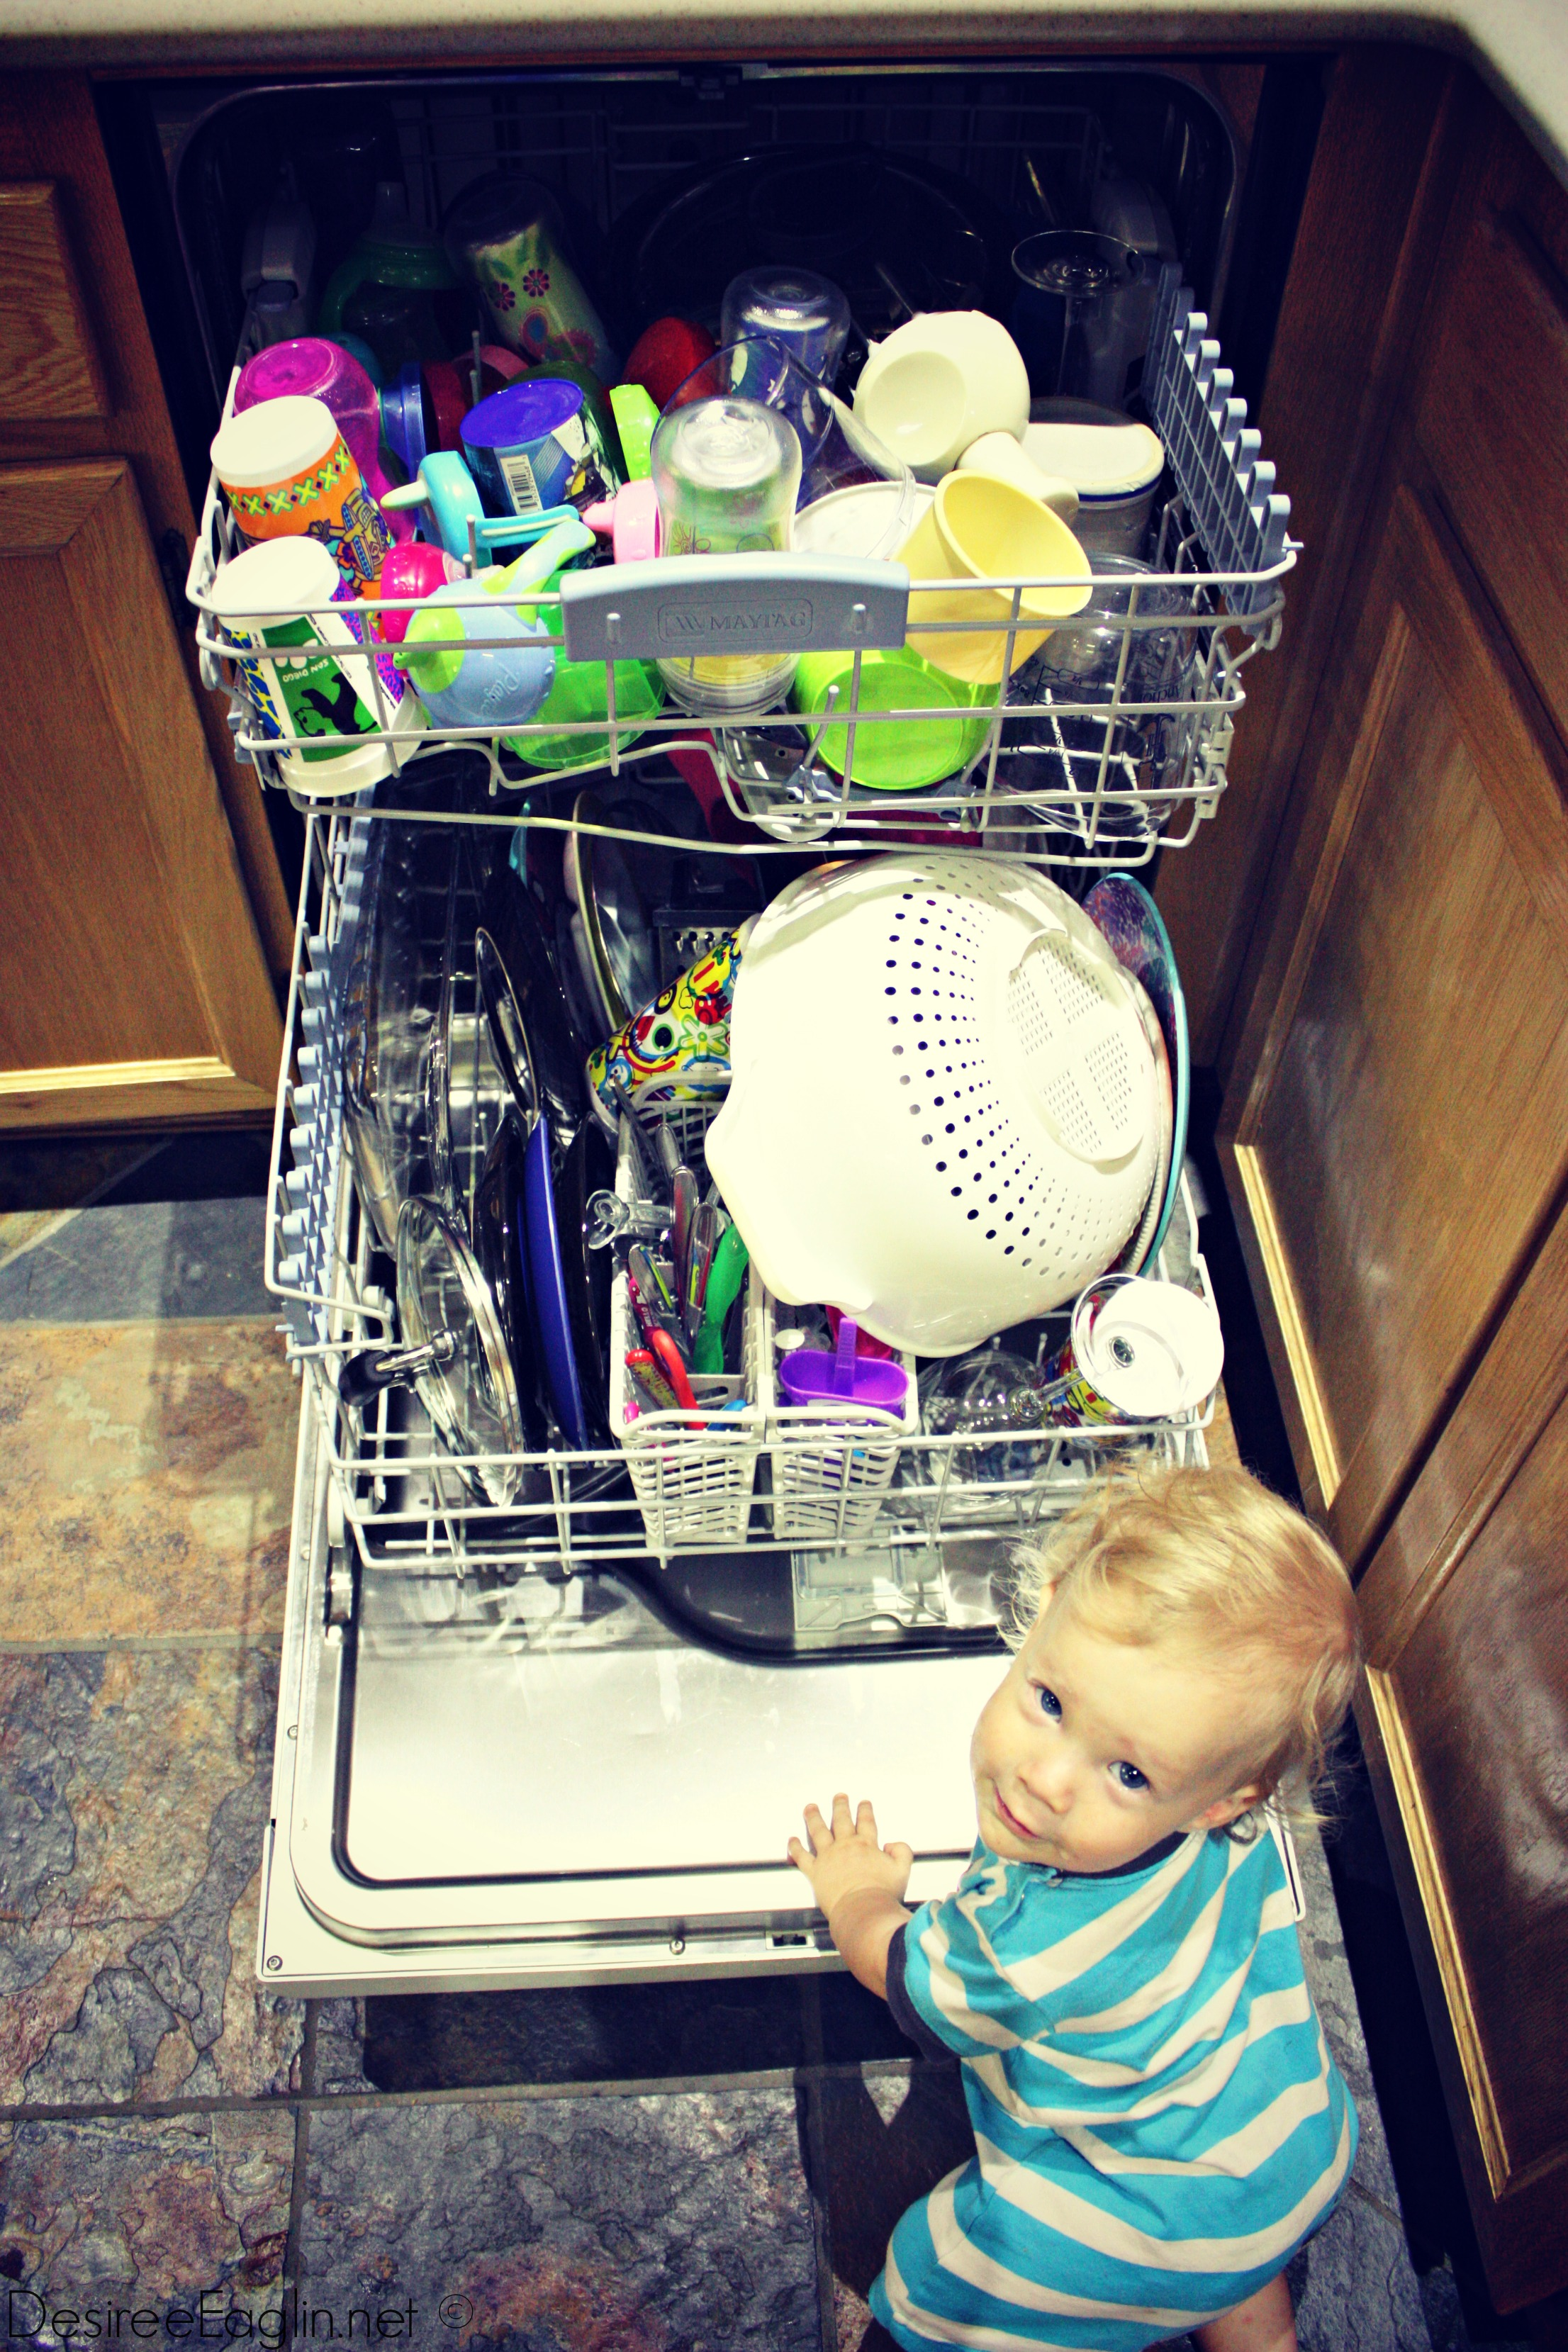 dishwasher clean